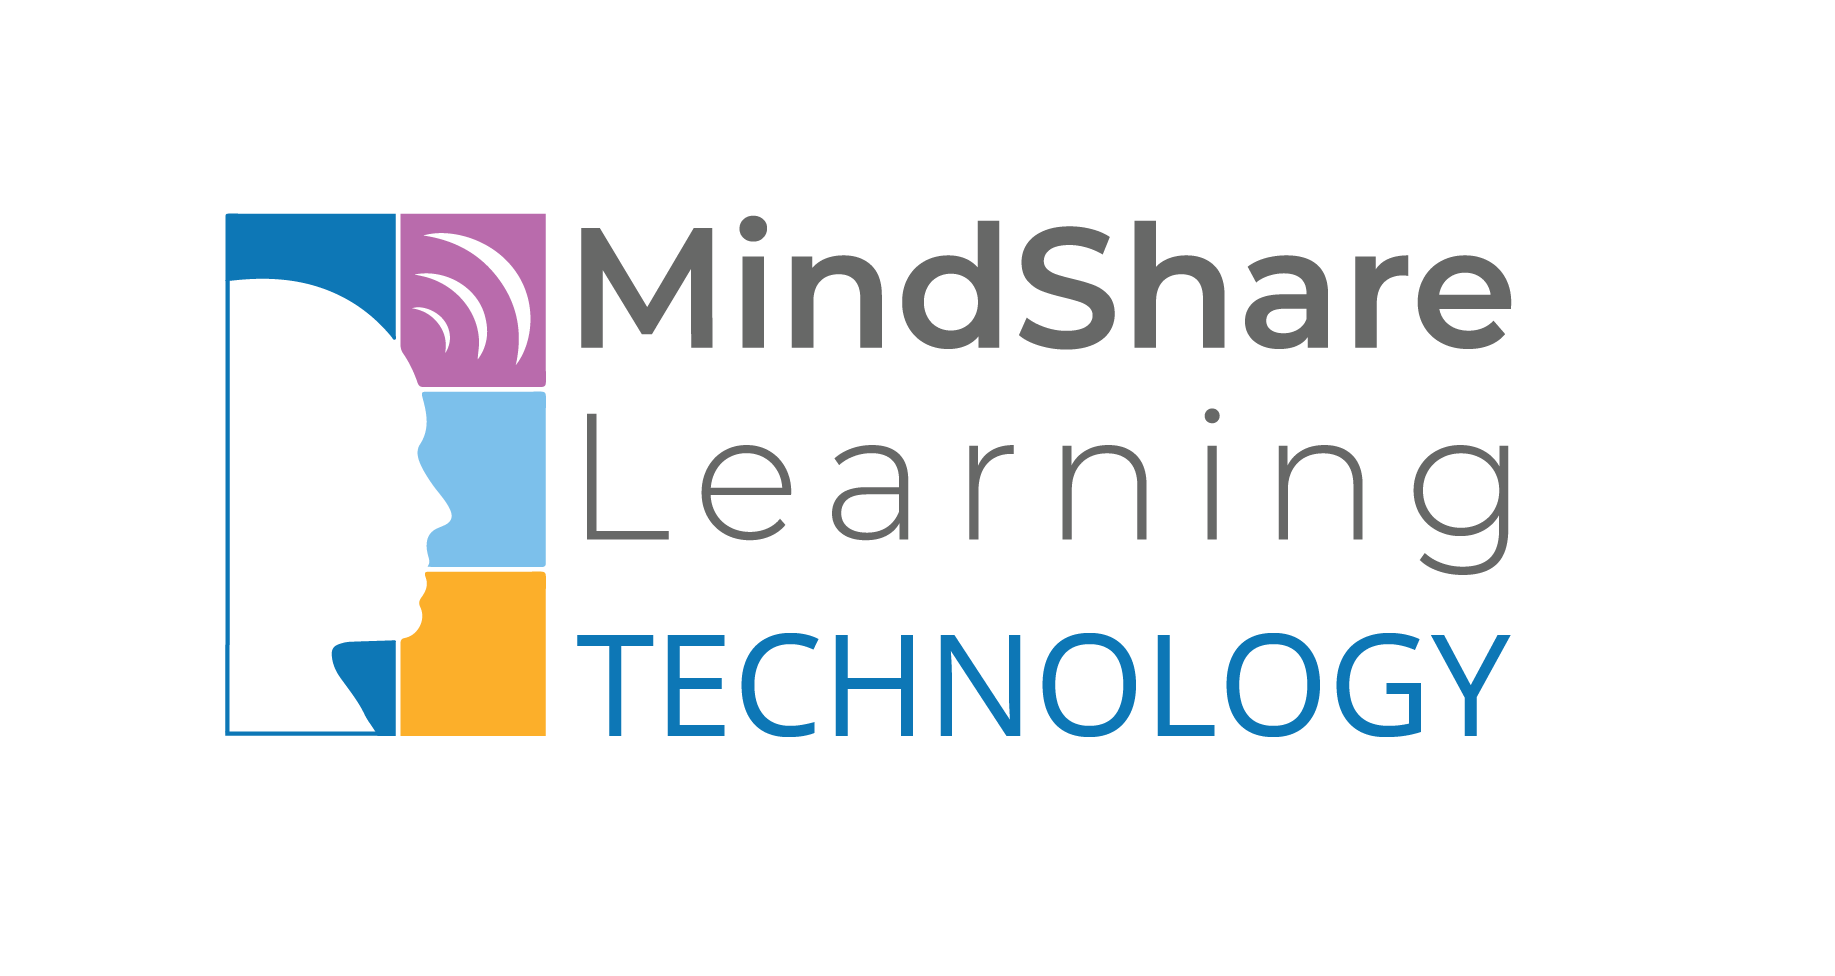 MindShare Learning Technology Logo